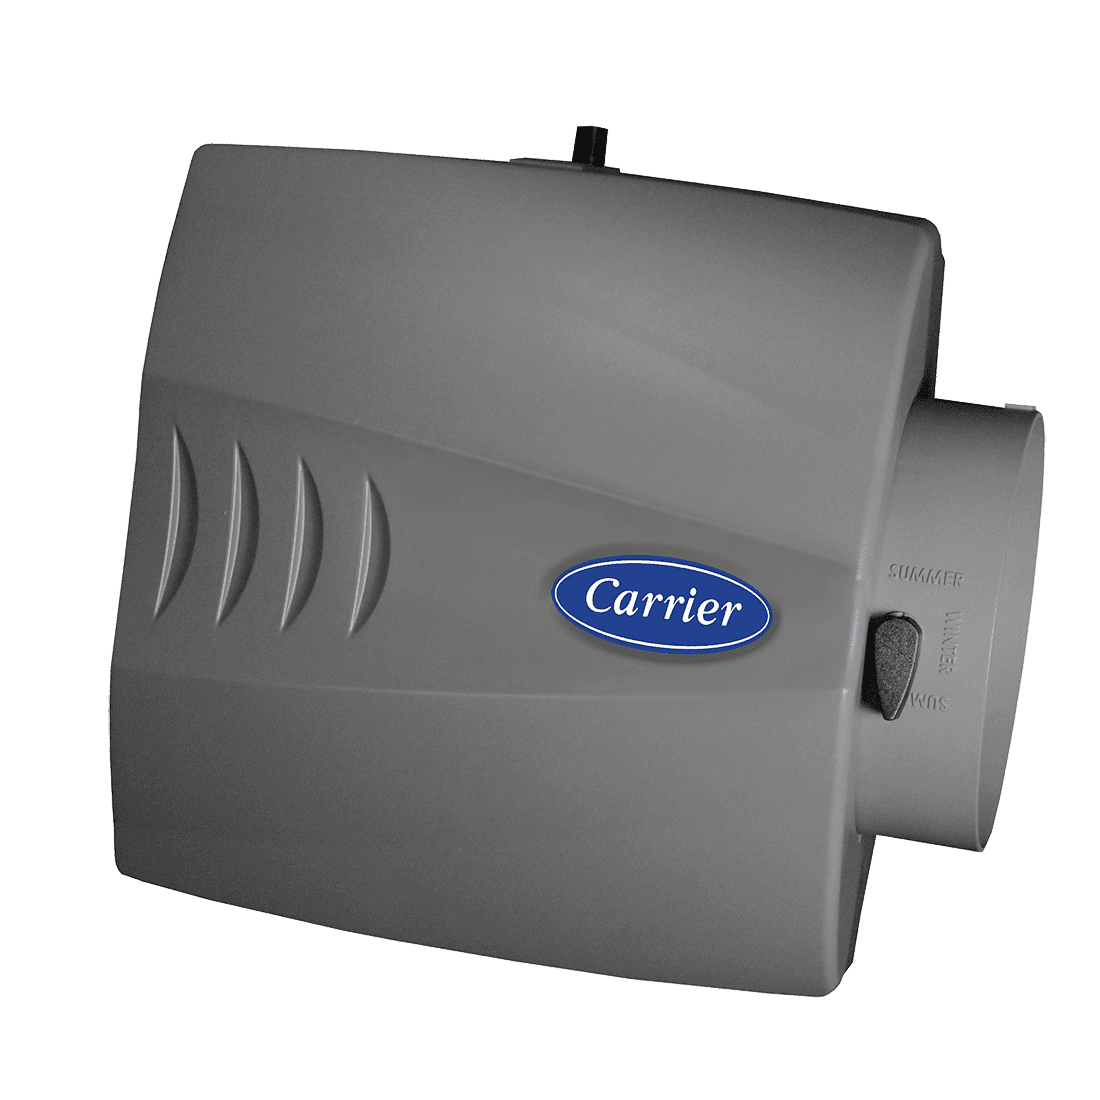 Performance™ Bypass Humidifier Model: HUMCCLBP